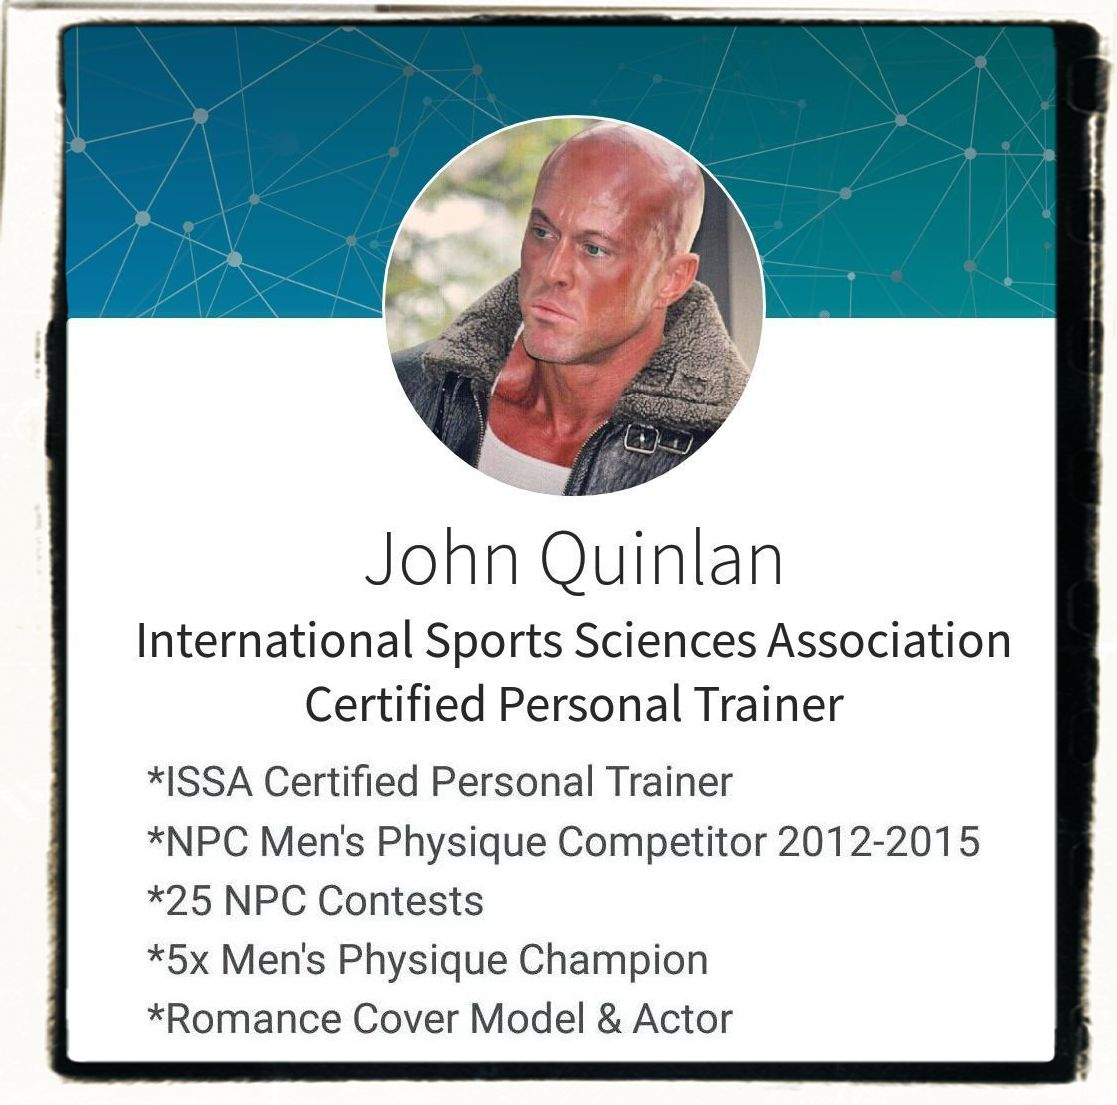 Tattooed Male Romance & Physique Model Actor John Joseph Quinlan Certified Personal Trainer #JohnQuinlan